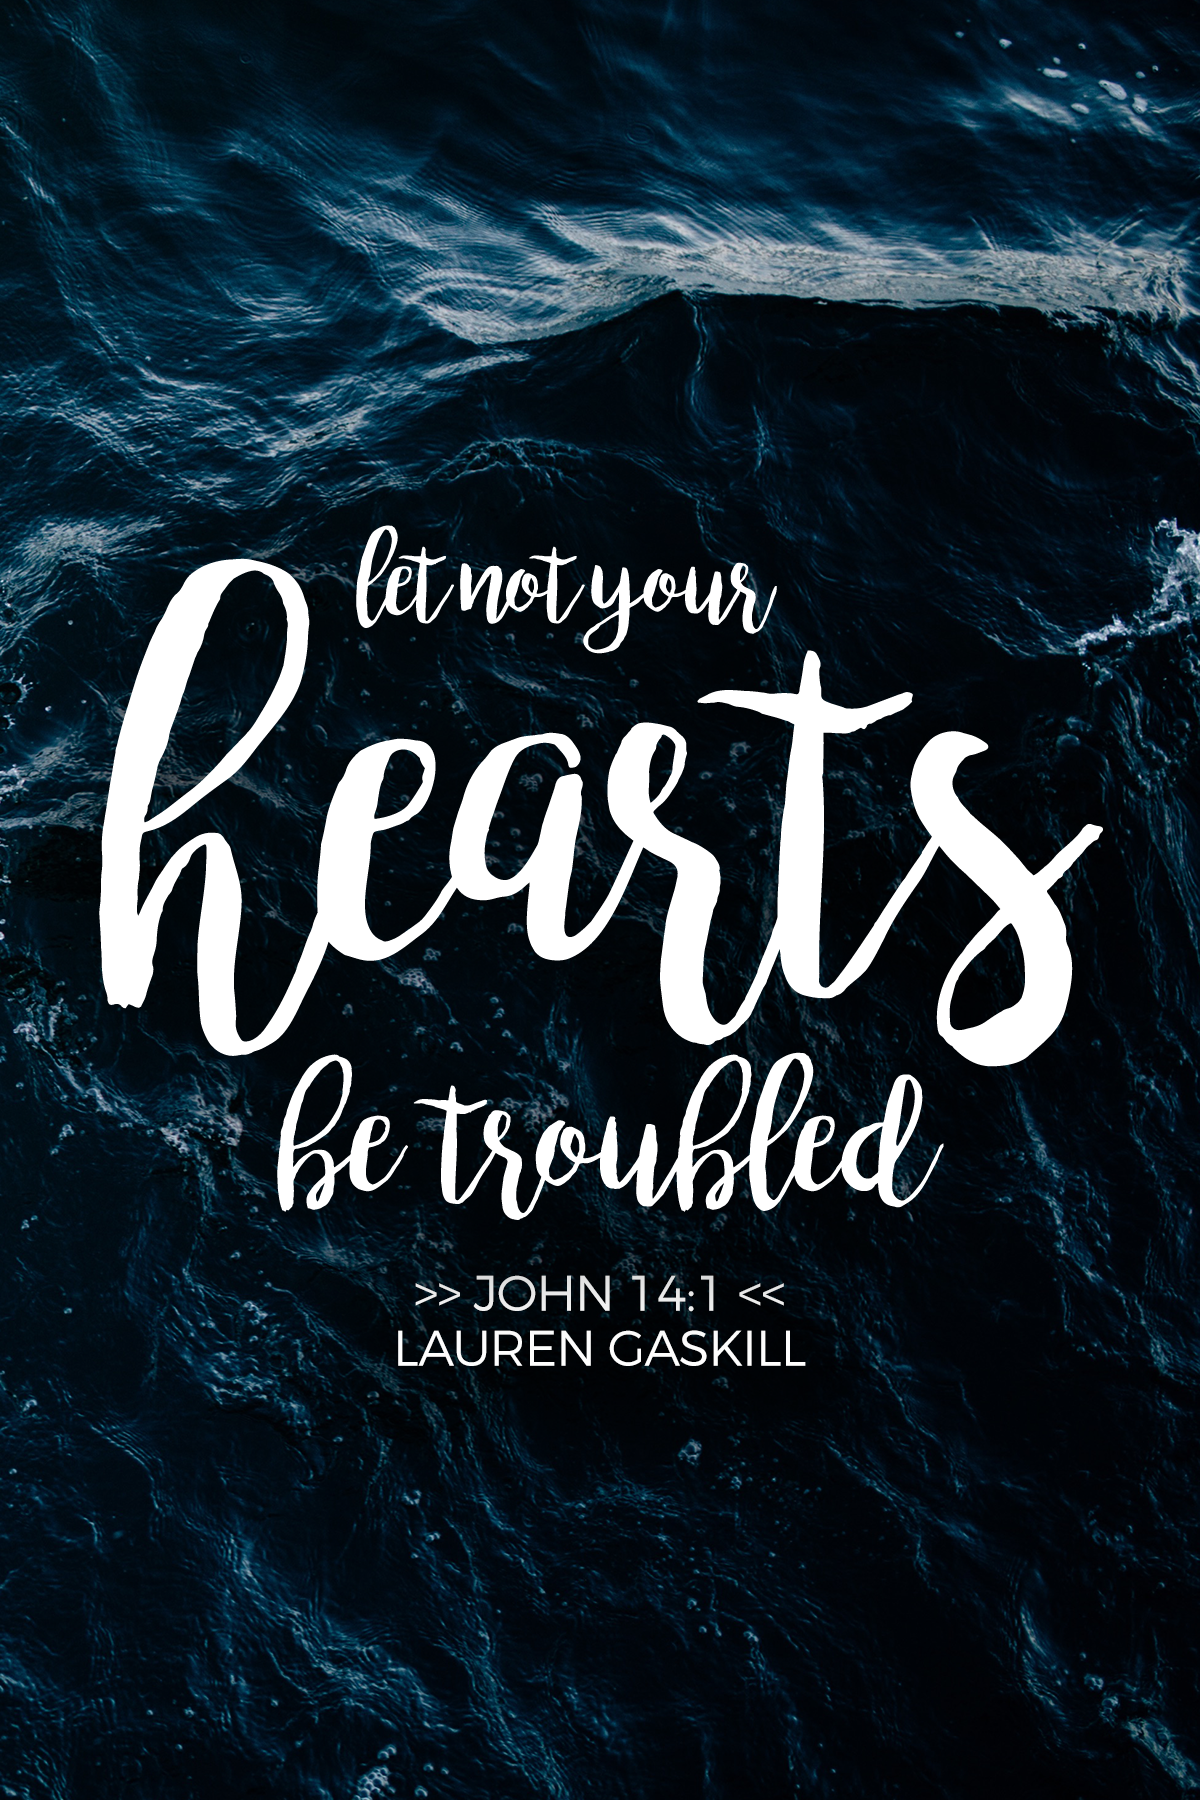 Let not your hearts be troubled. {John 14:1}